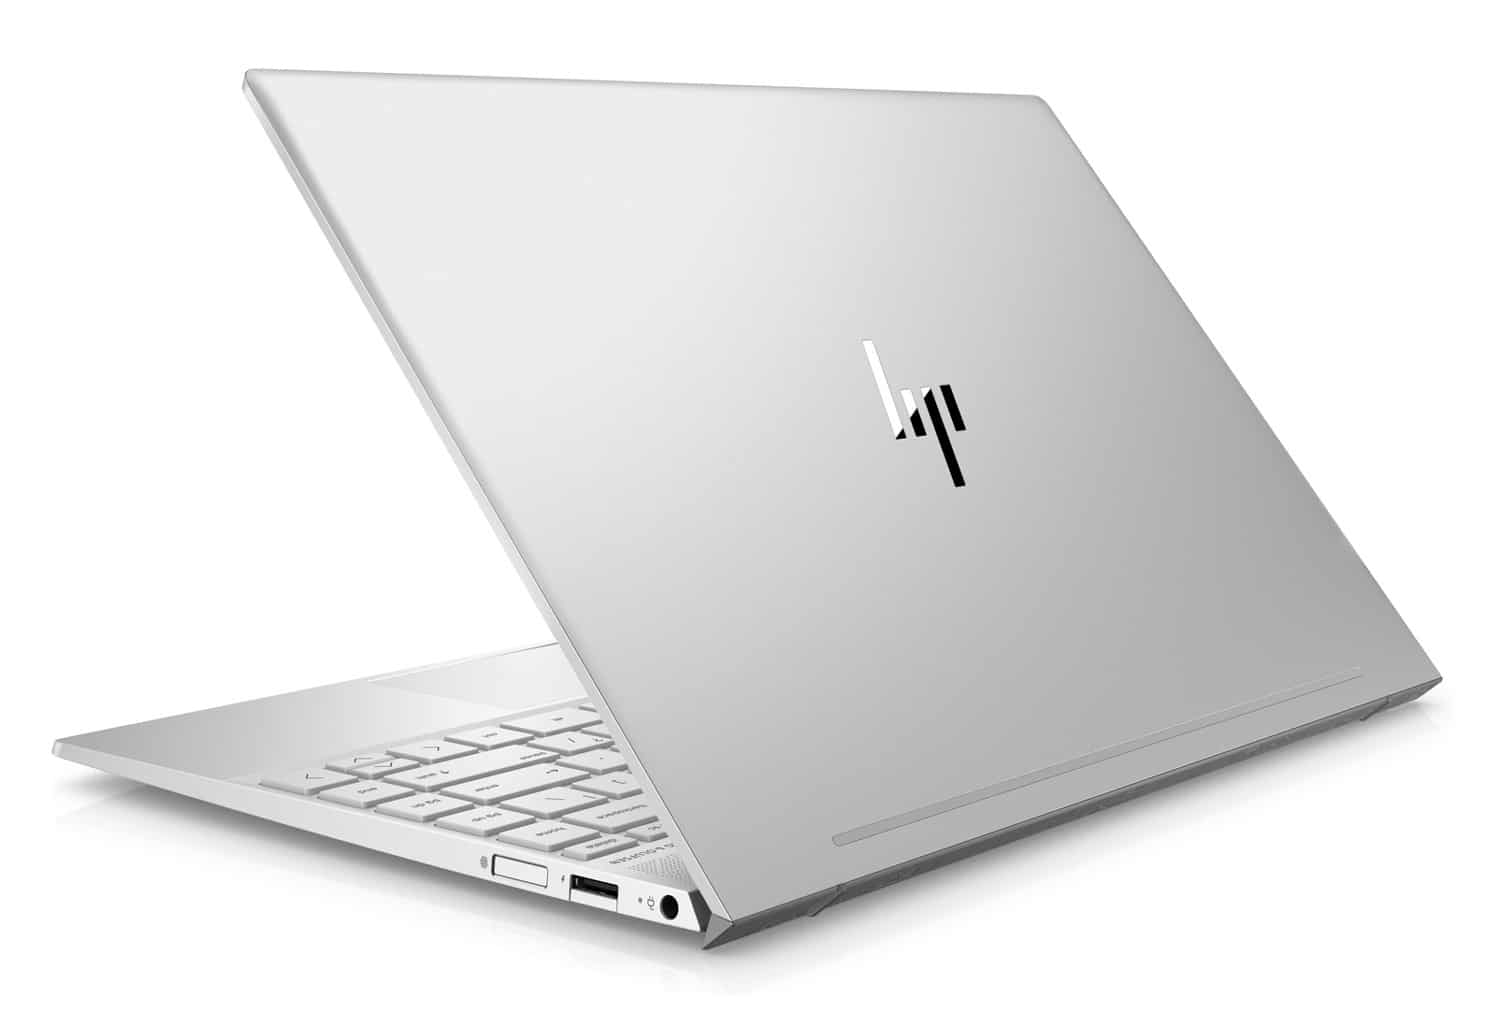 HP Envy 13-ah0020nf, Ultrabook design SSD 512 (760€)